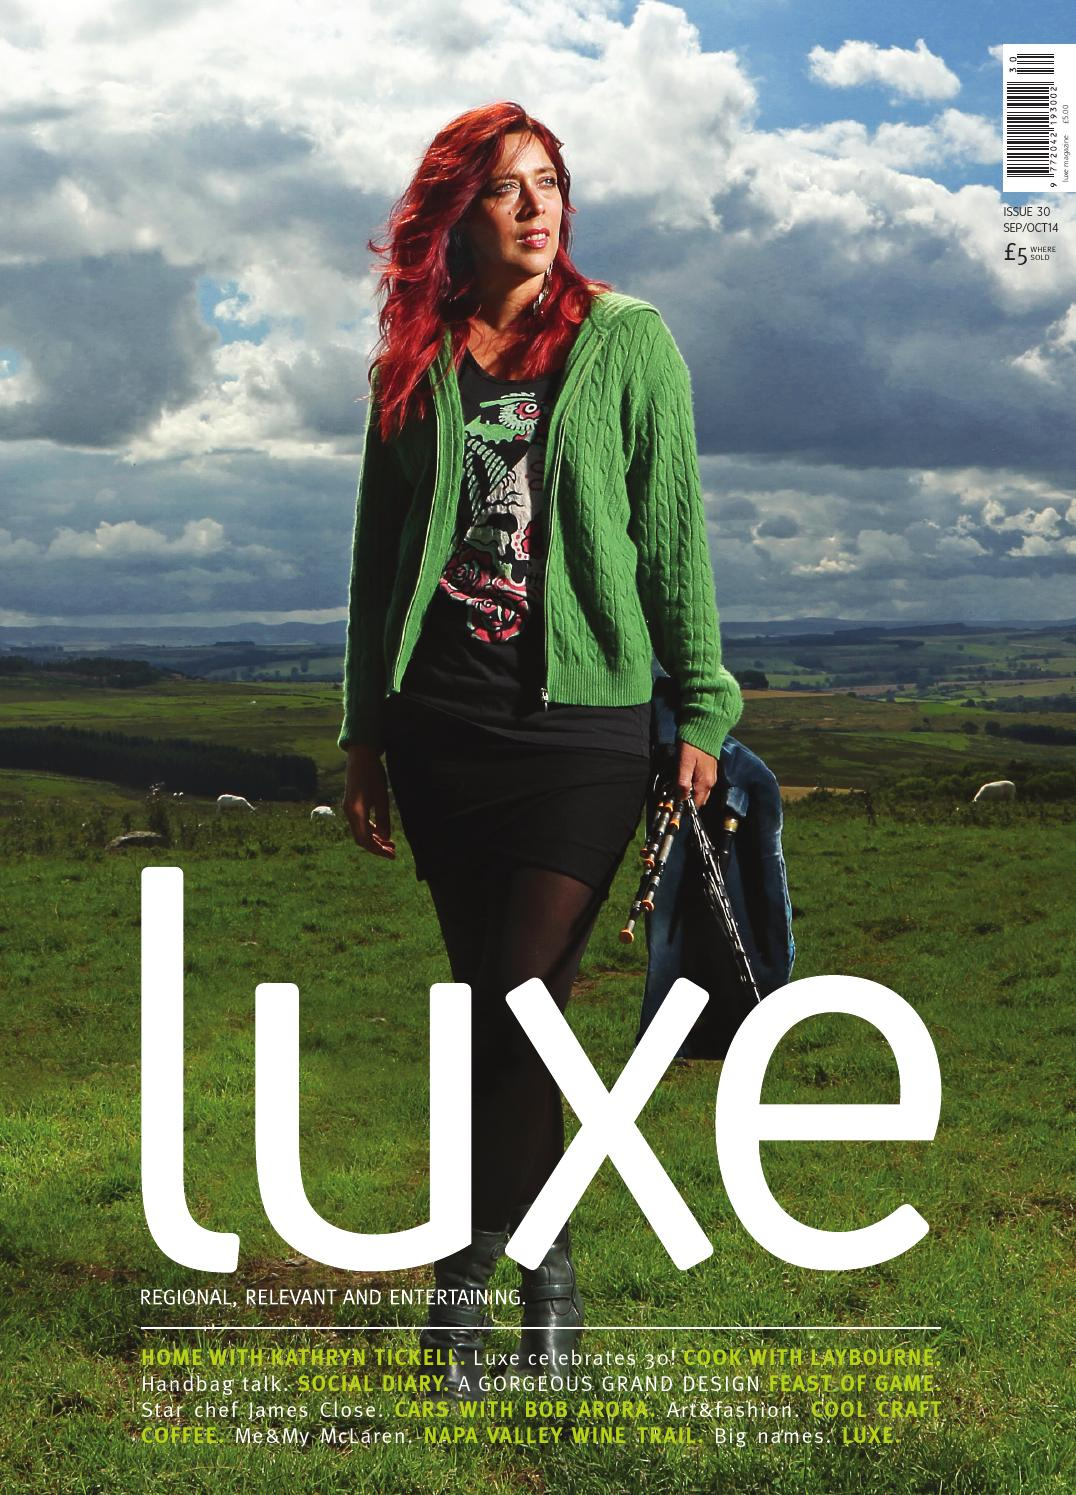 80e8364e0c Luxe Sept Oct 2014 by Remember Media limited - issuu